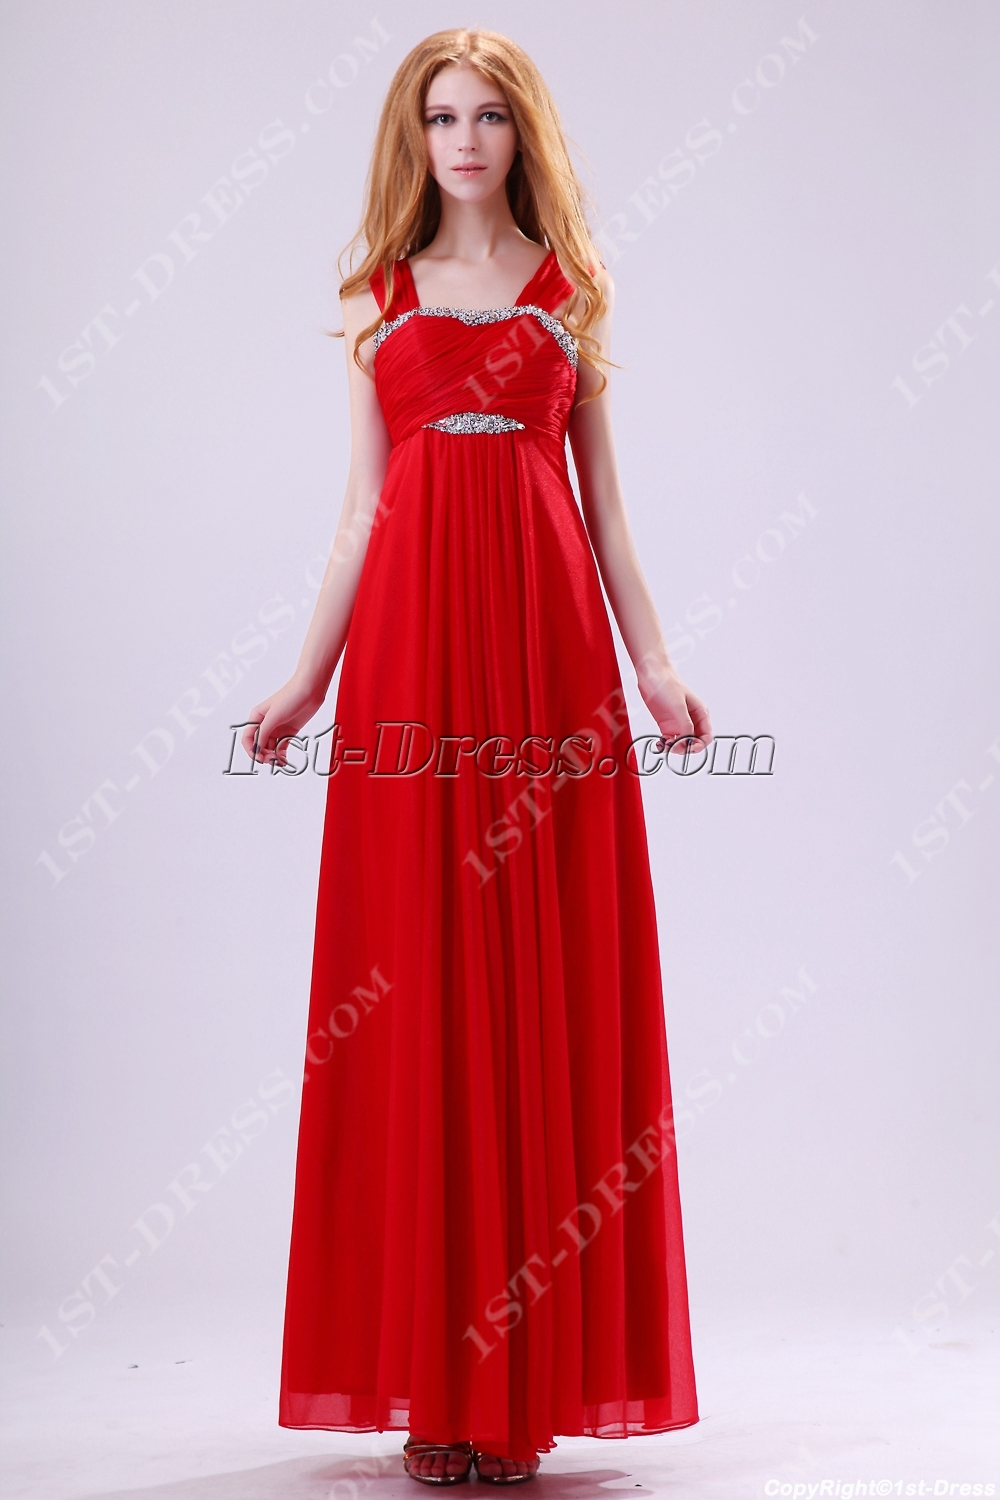 Red Straps Plus Size Graduation Dresses for 8th Grade Girls $165.00